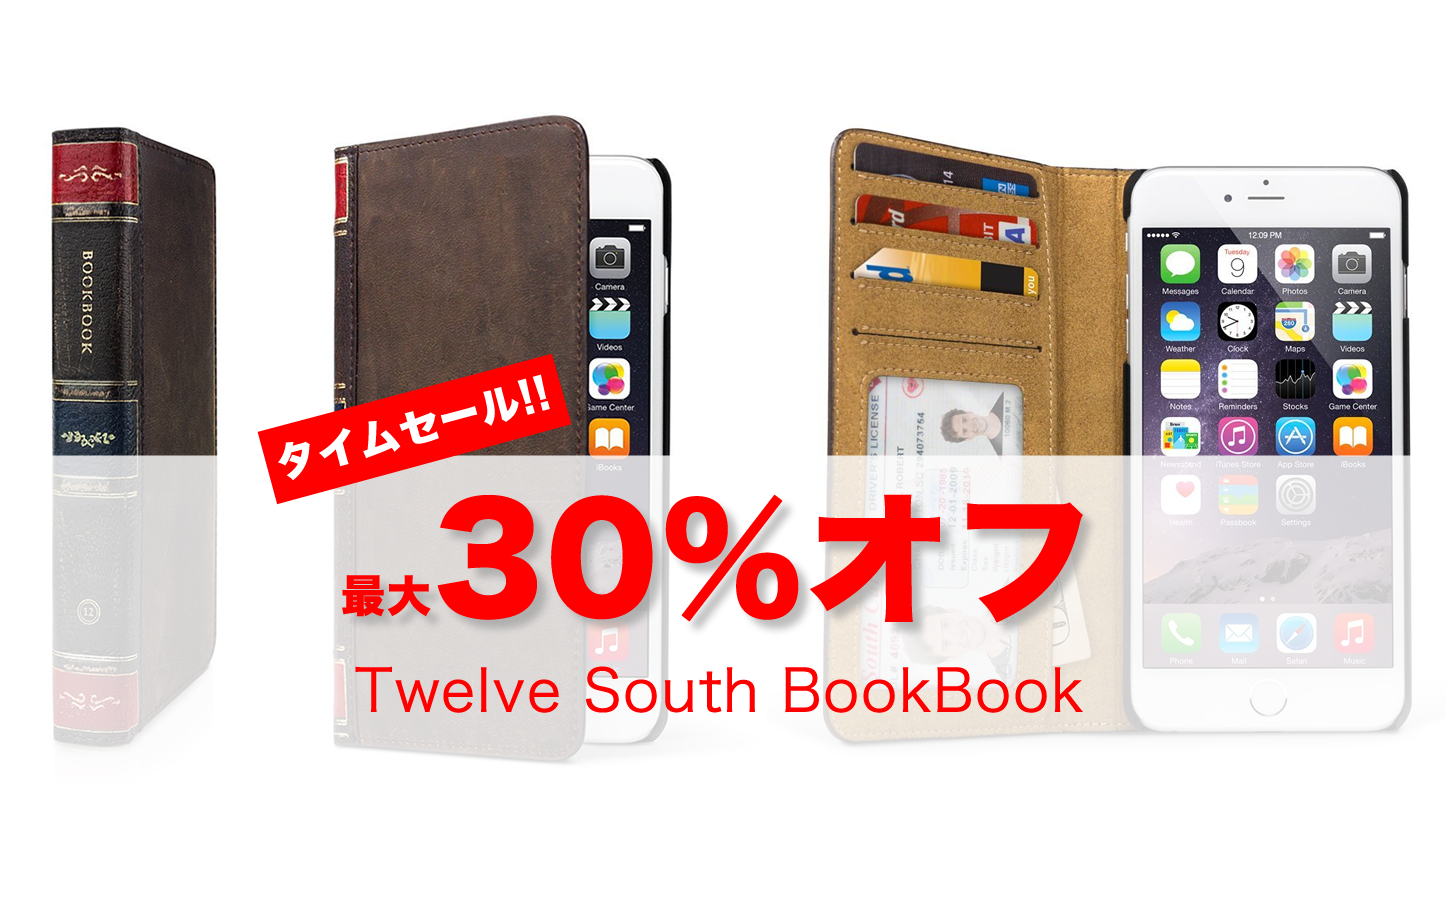 Twelve South BookBook